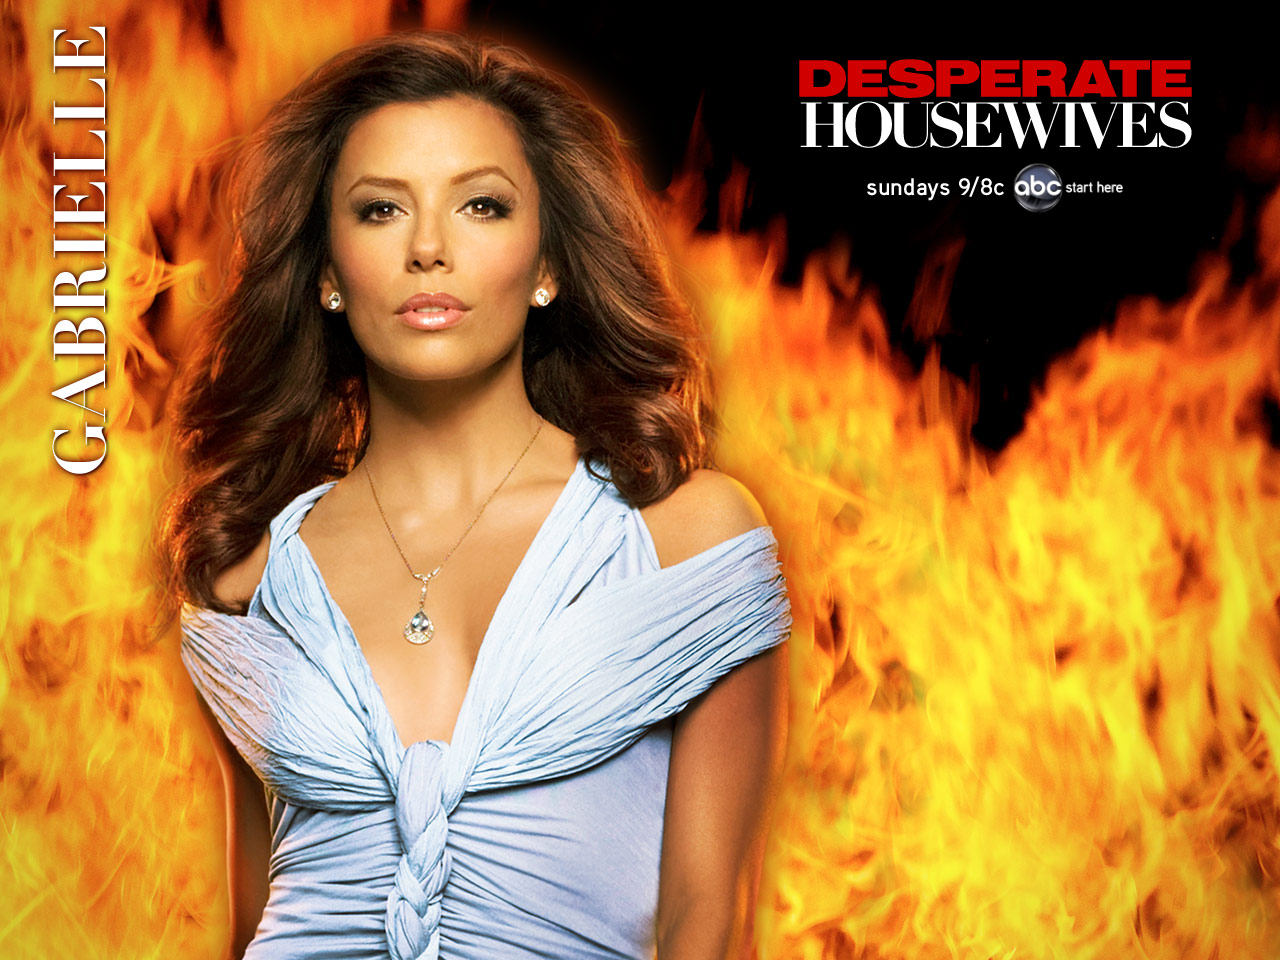 desperate housewives wallpapers - Desperate Housewives Entertainment Wallpaper